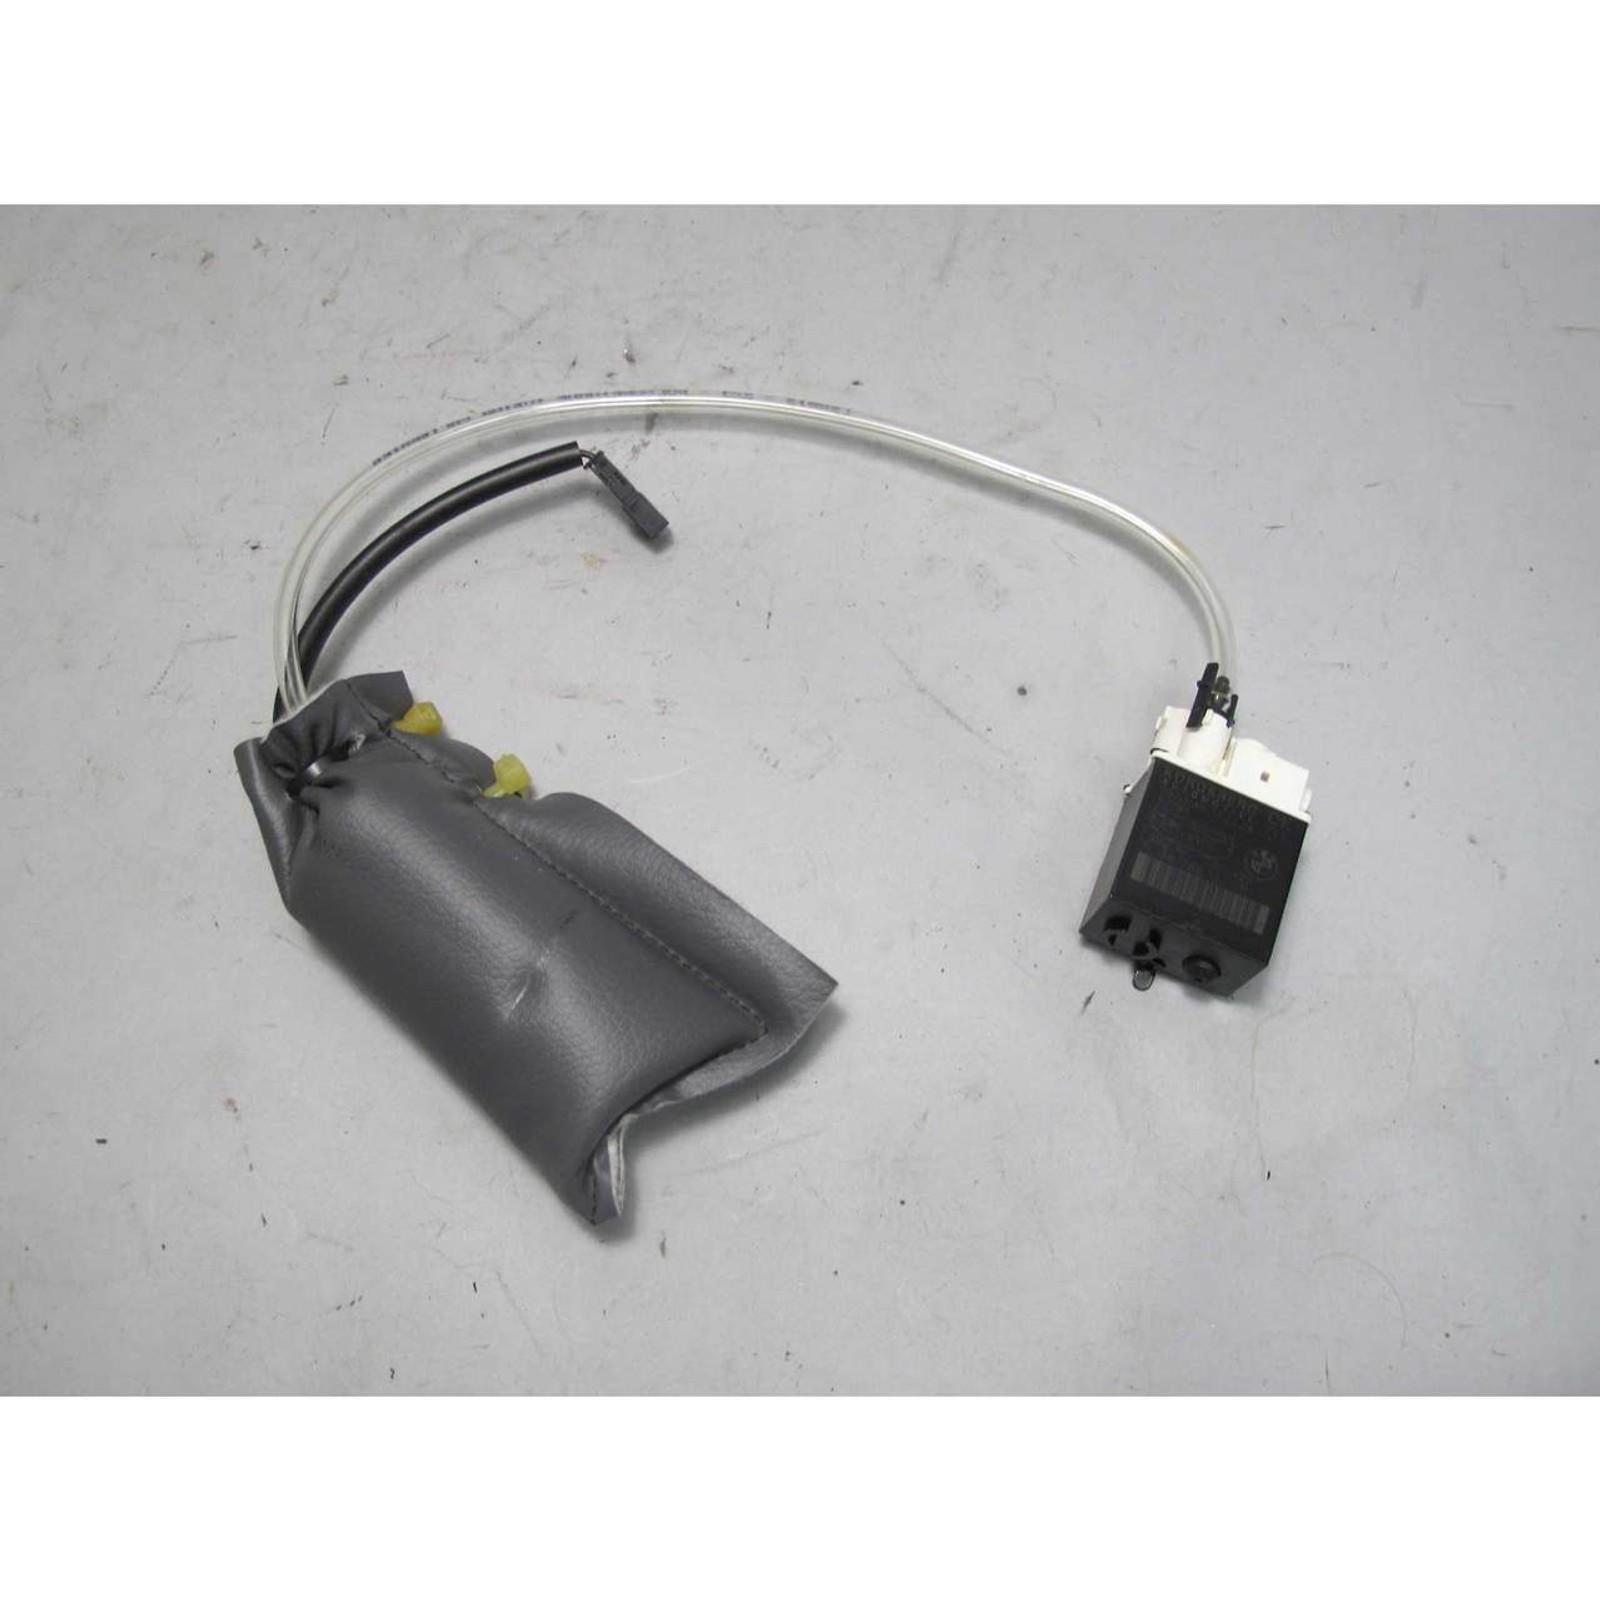 2006 2017 Bmw 1 Series 3 Series X3 Lumbar Support Air Pump For Sports Seat Used Prussian Motors